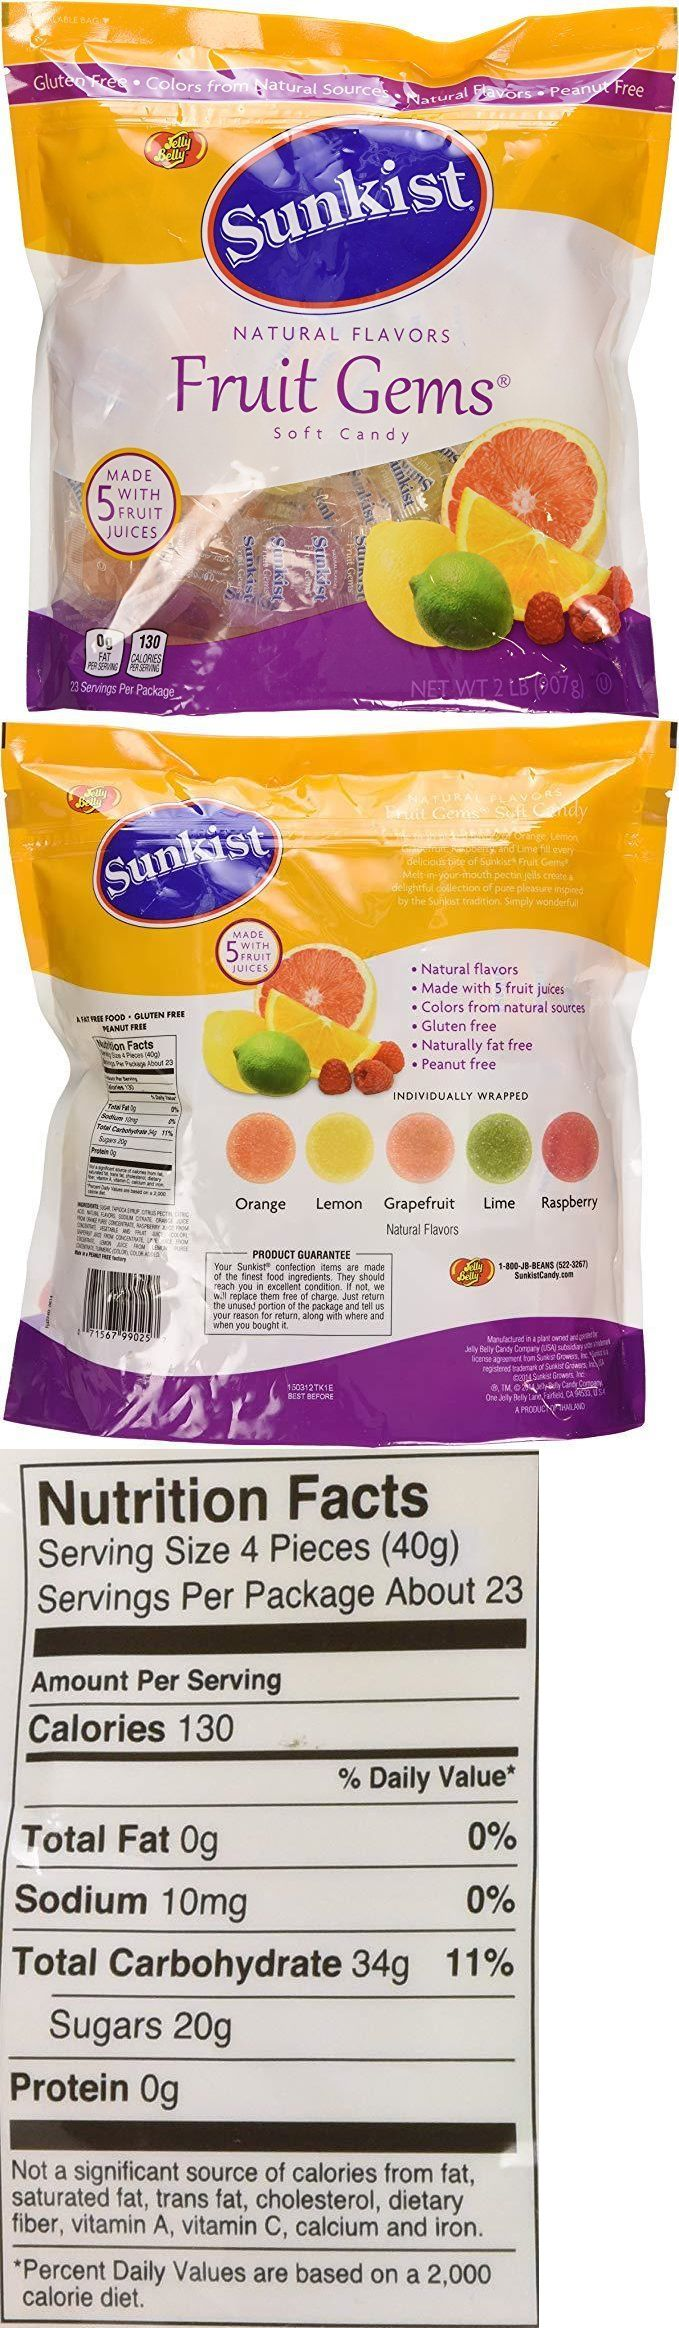 106 Delightful Sunkist Fruit Chips images | Healthy treats, Freeze dried fruit, Health snacks